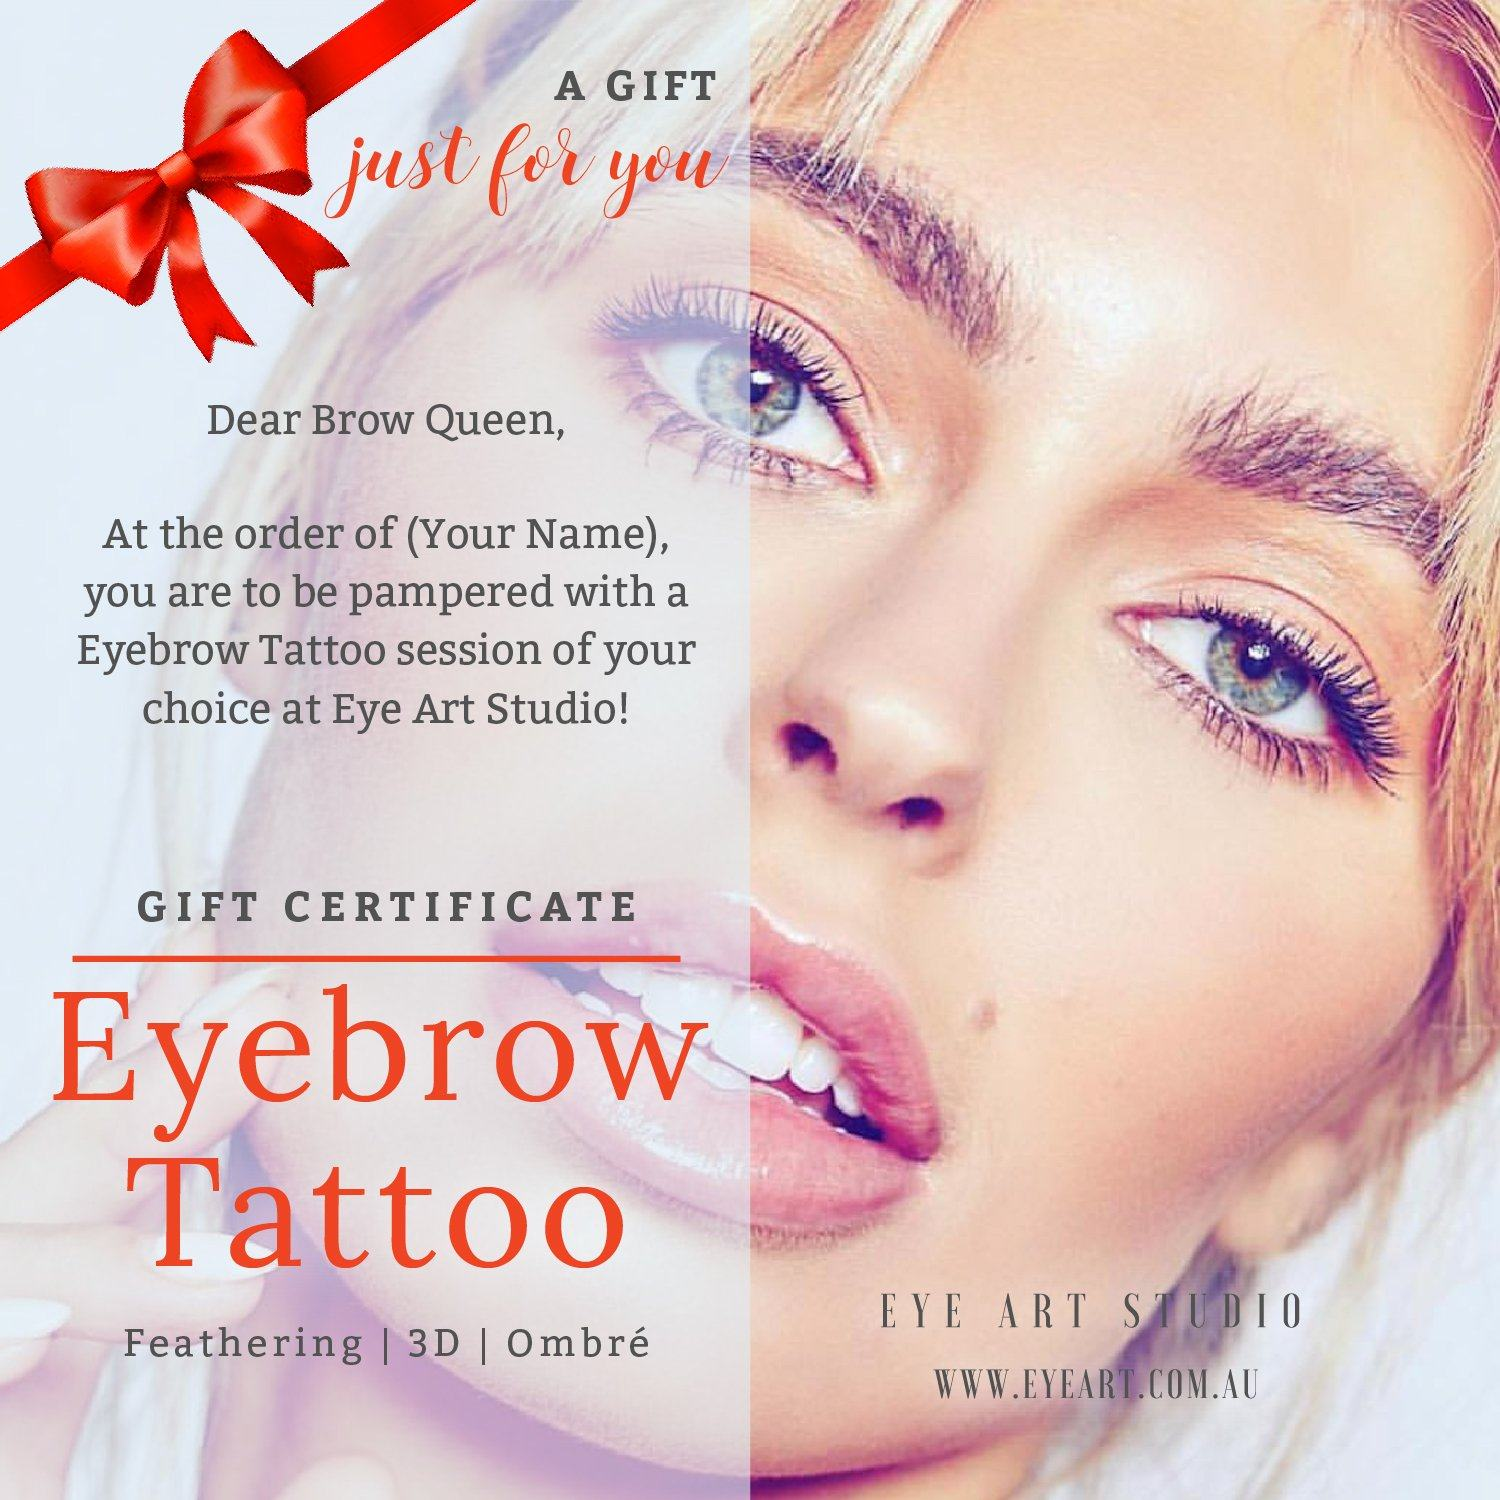 Eyebrow Feathering Gift Certificate In Melbourne A Perfect Gift